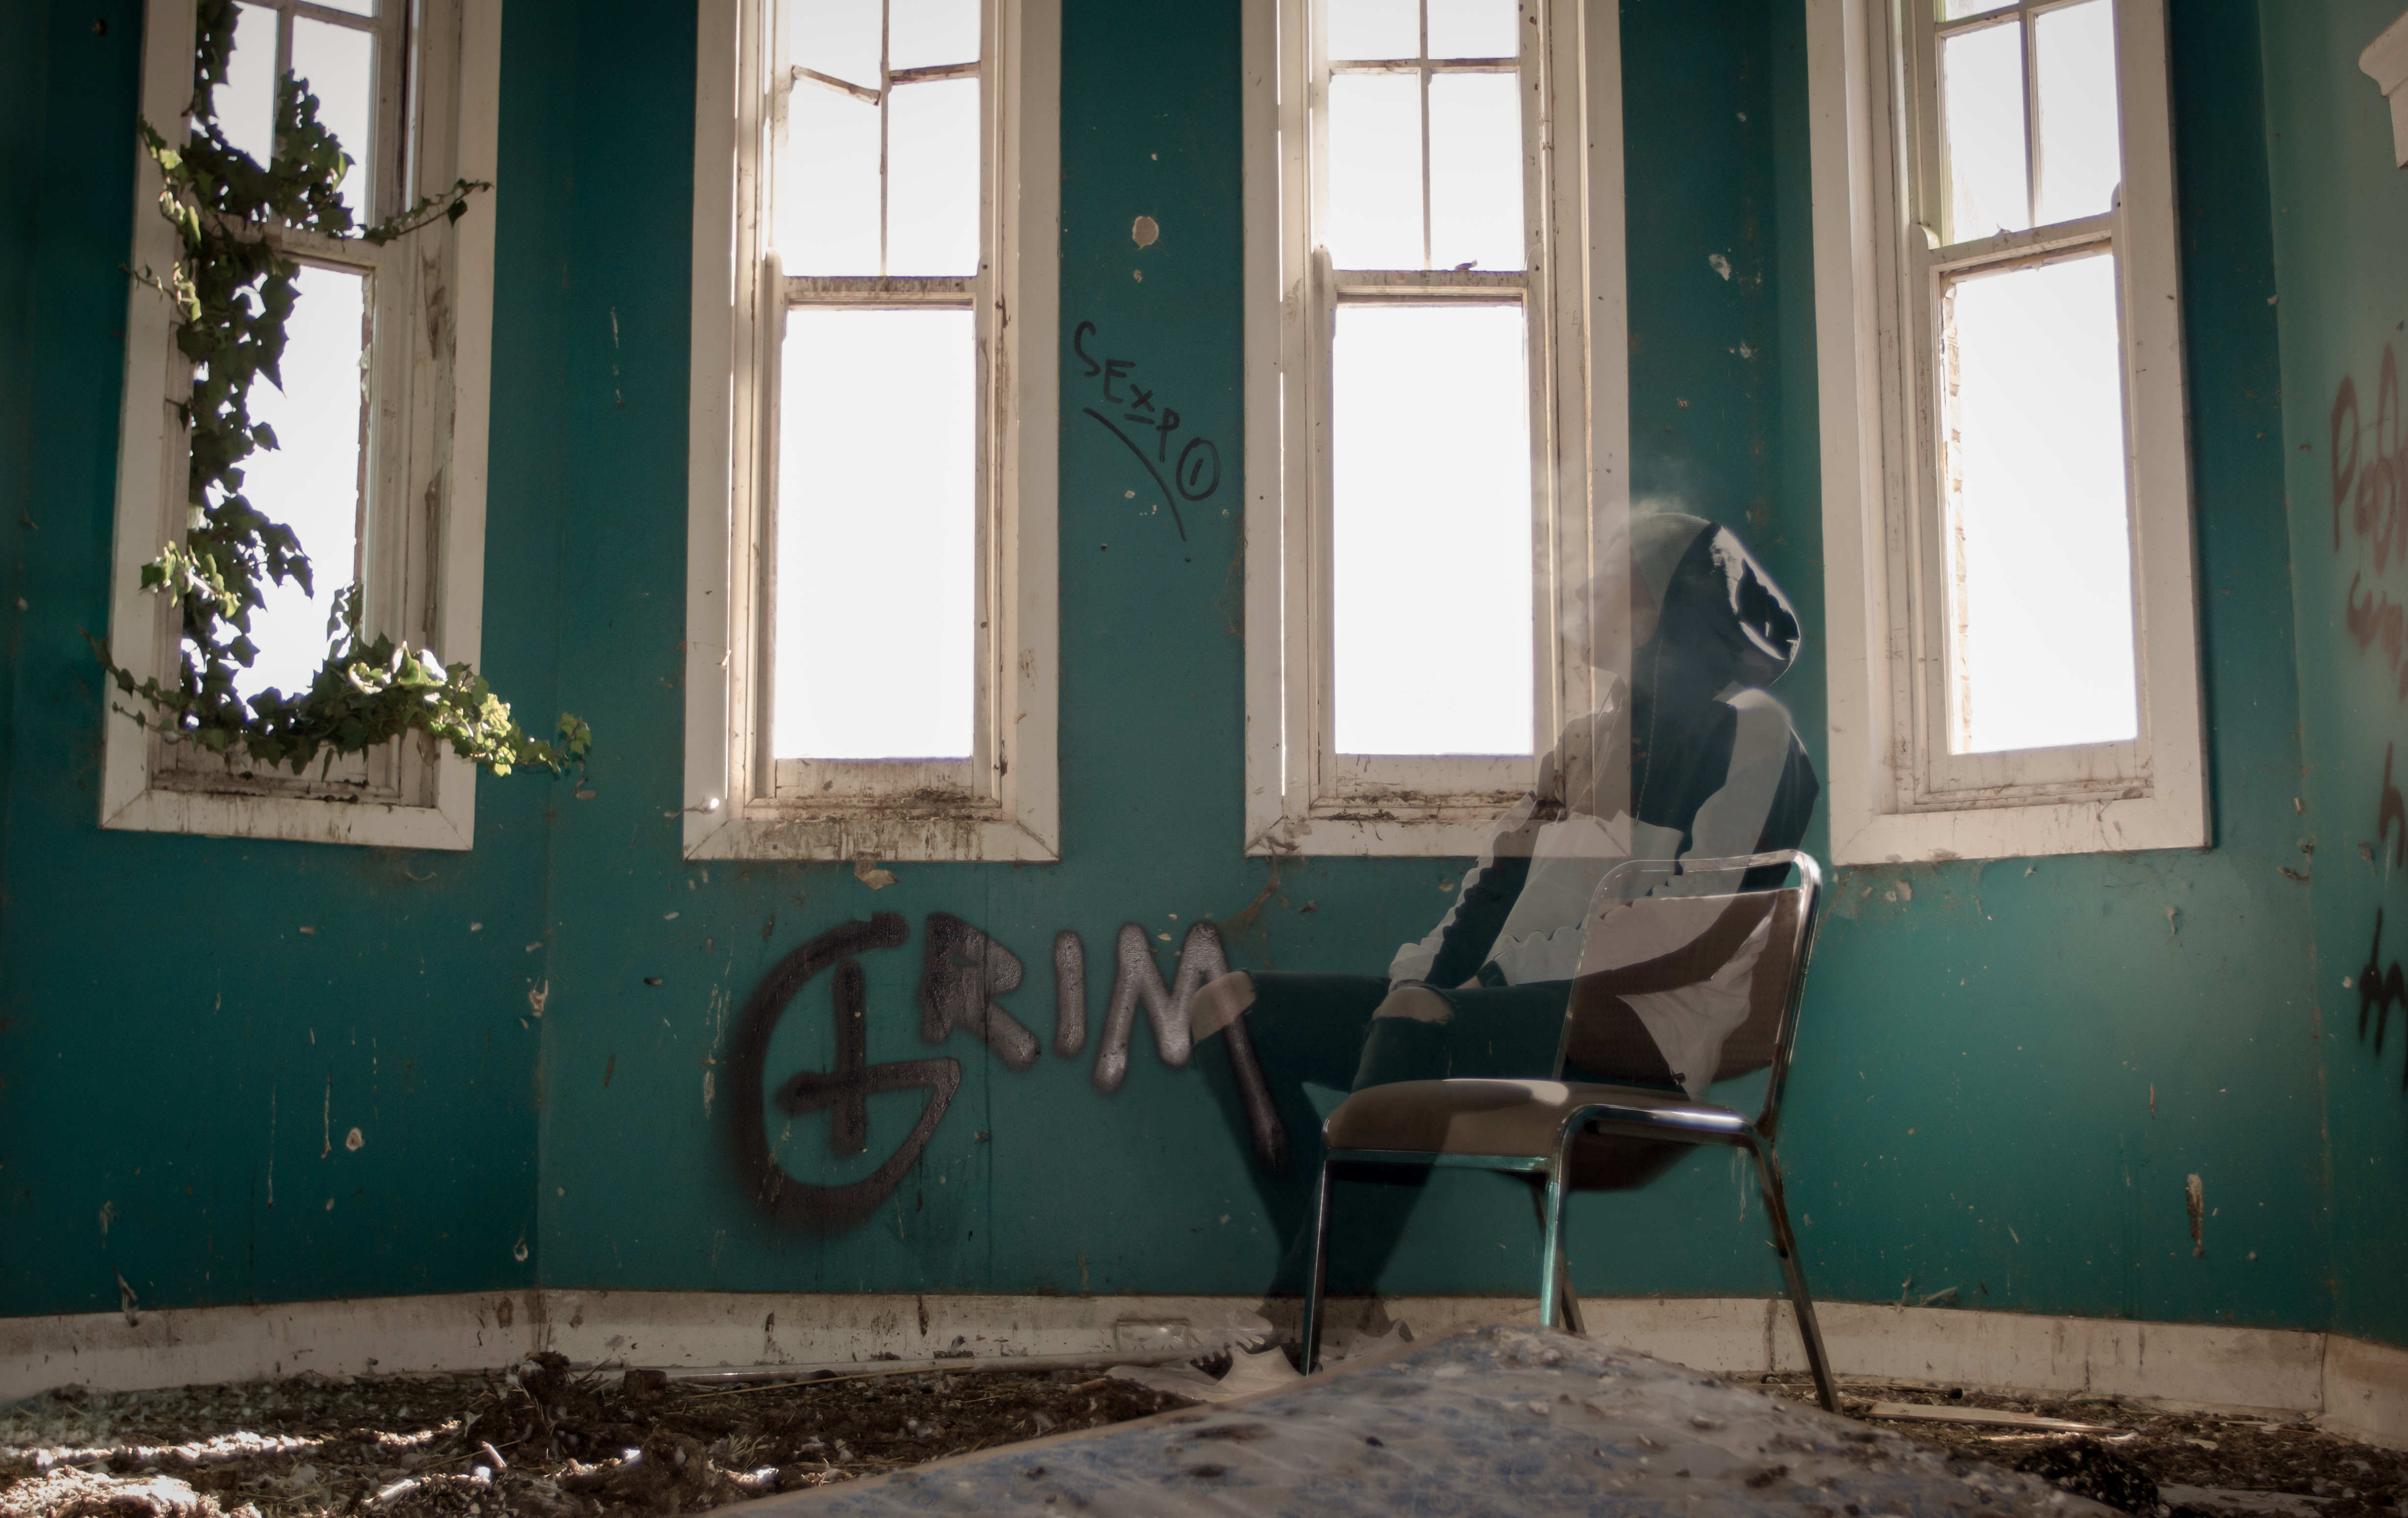 Ghost sitting on chair in empty room. Photograph by kind permission of Corey McAloon. Instagram: coreymcaloon